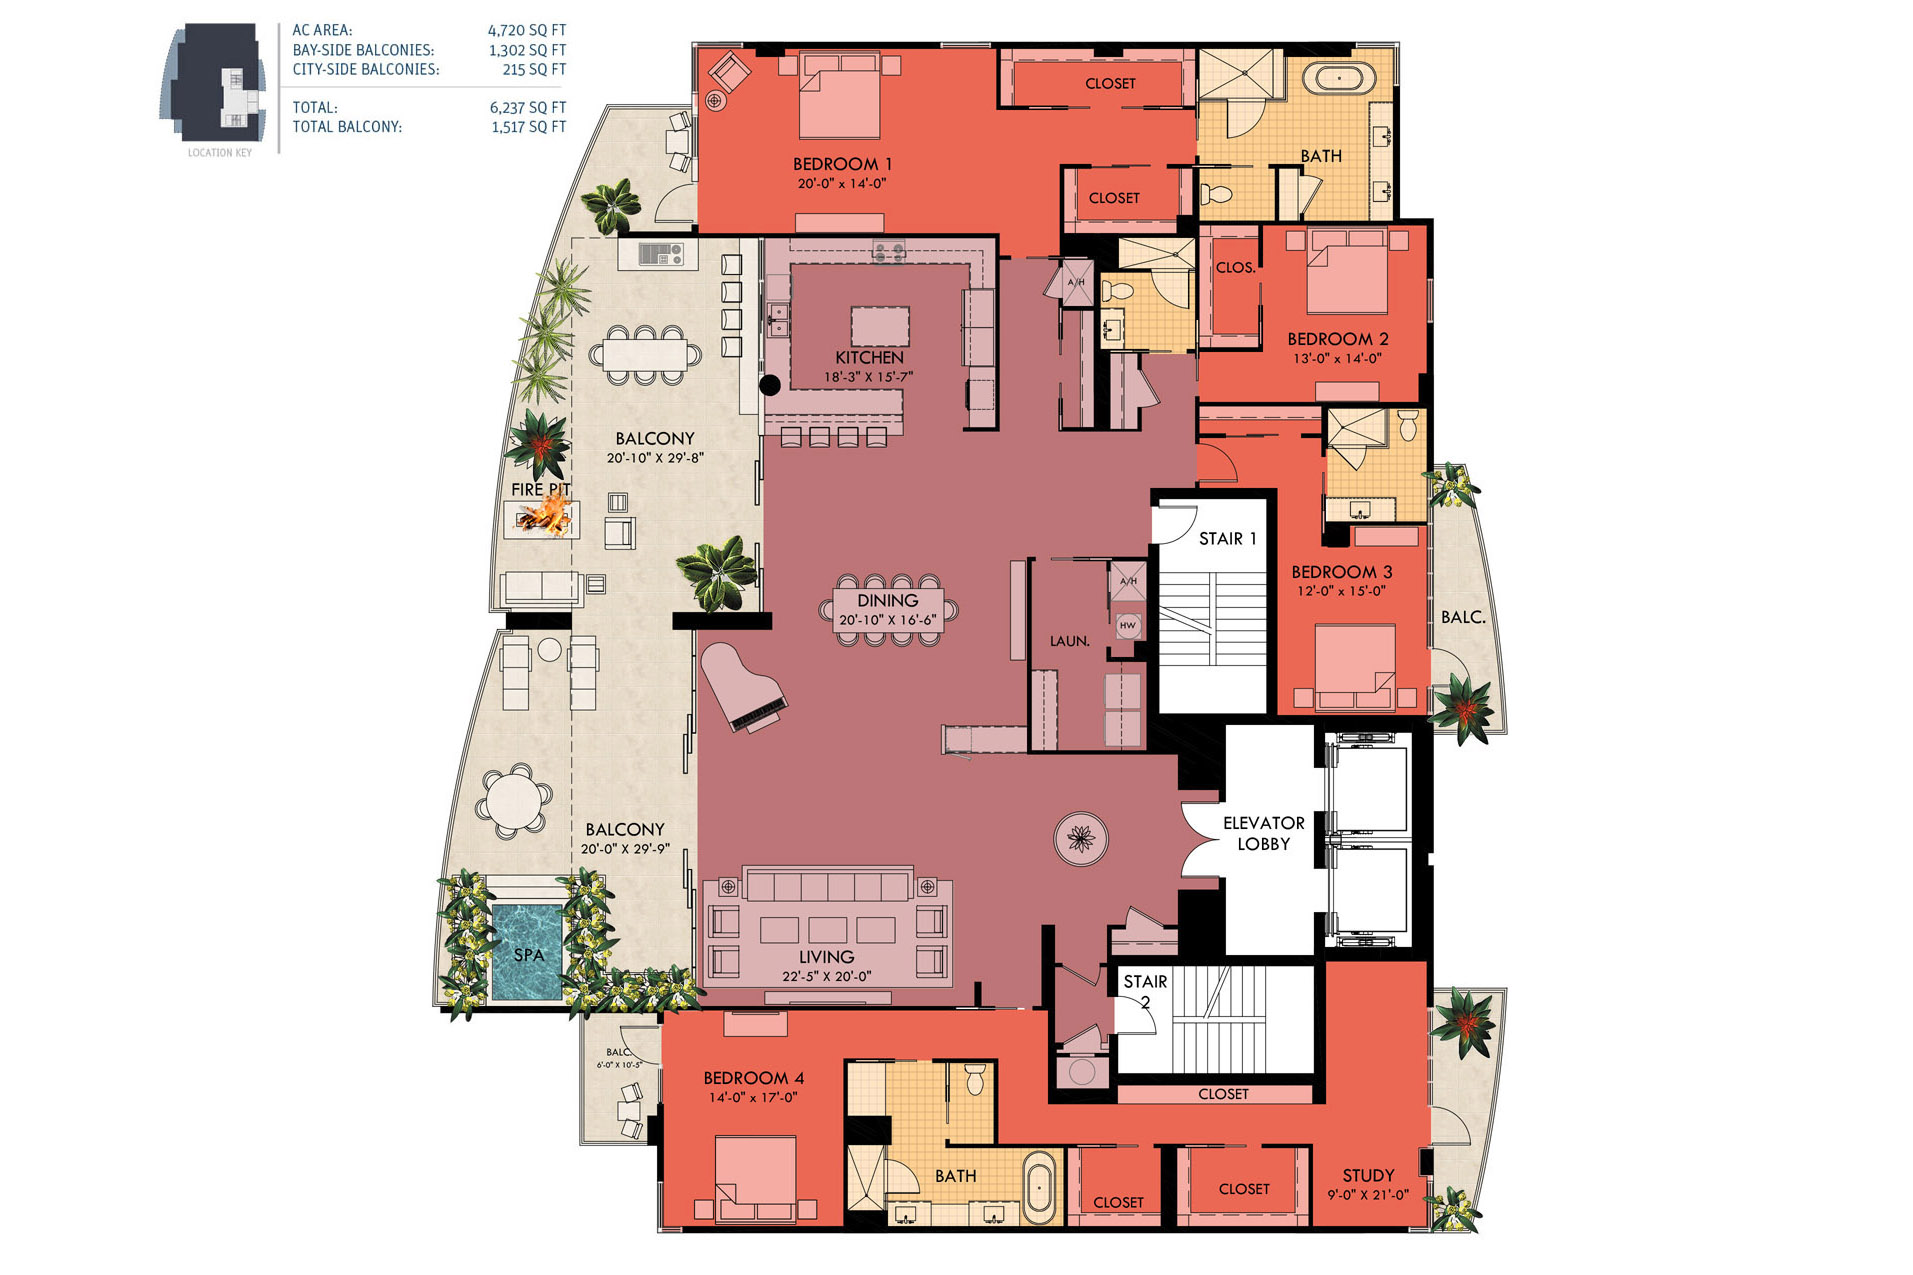 Sansara condos in sarasota luxury bay view condosnew for Luxury plan